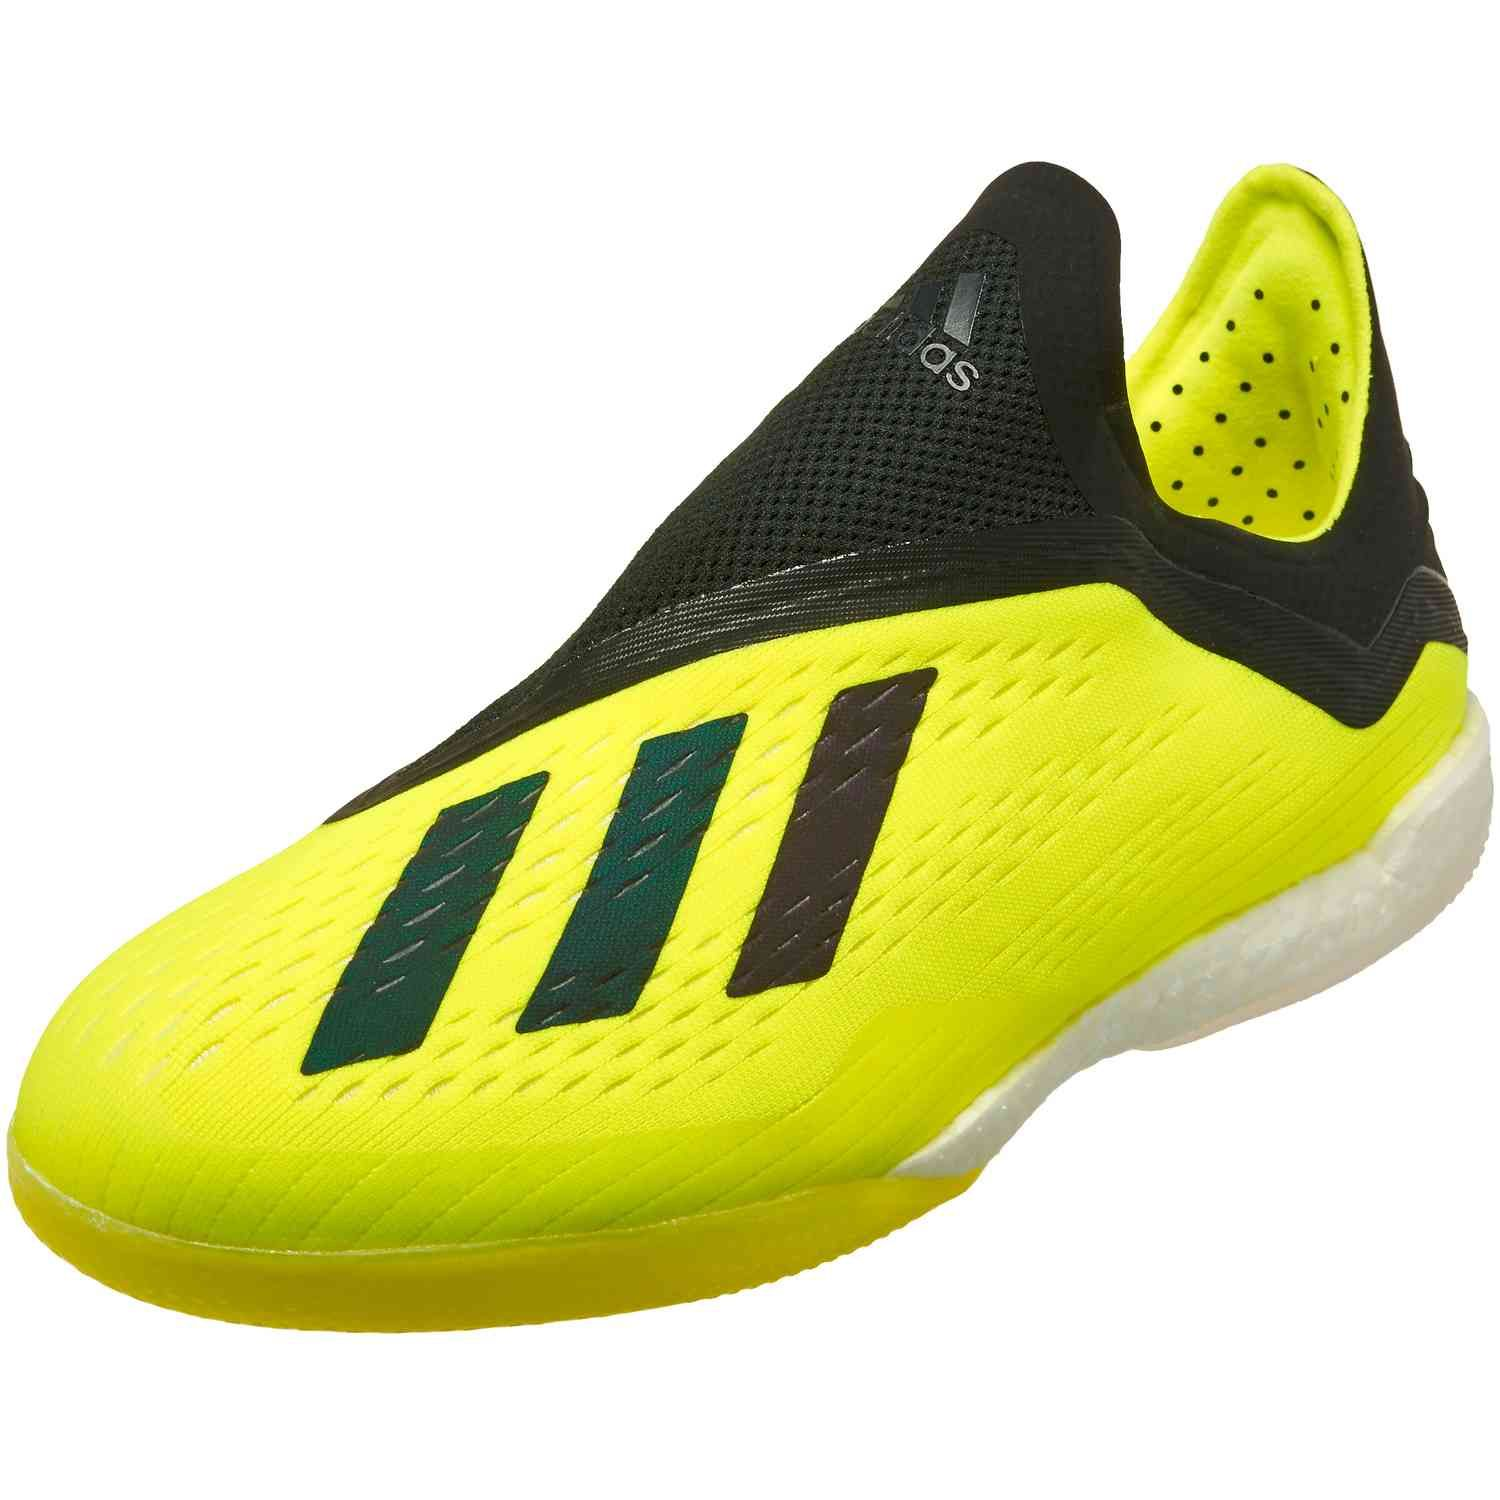 promo code 66c76 2b442 Team Mode pack adidas X Tango 18 indoor soccer shoes. Get them from  www.soccerpro.com